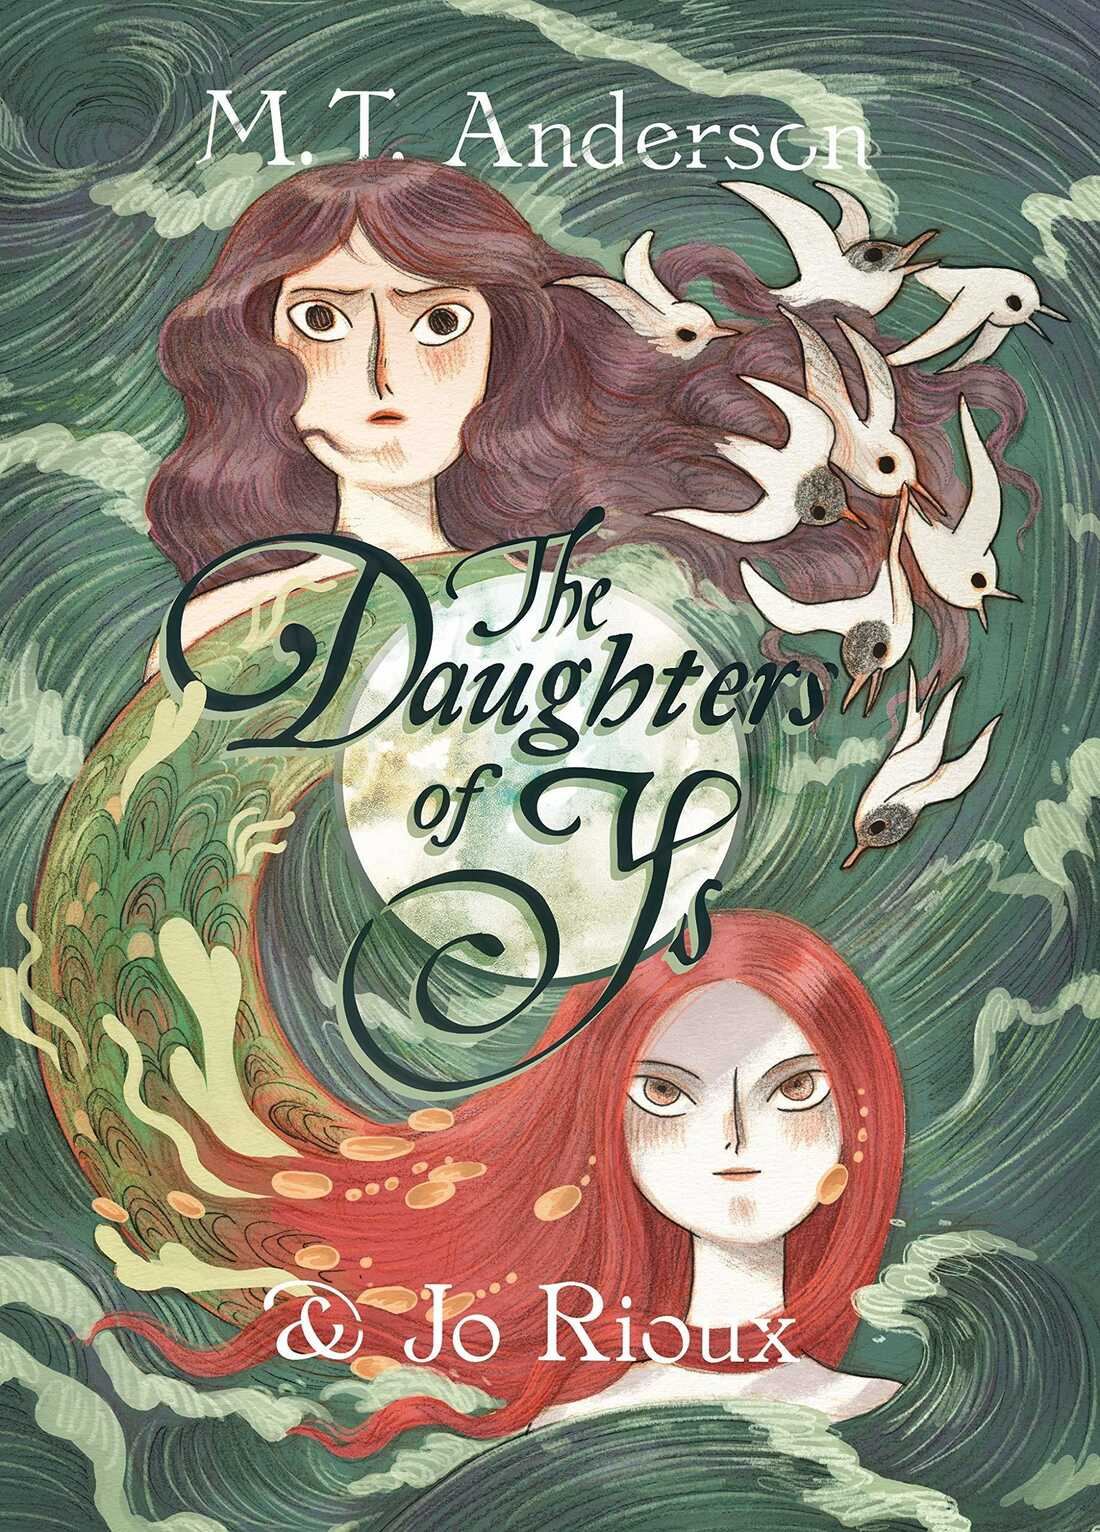 The Daughters of Ys, by M.T. Anderson and Jo Rioux